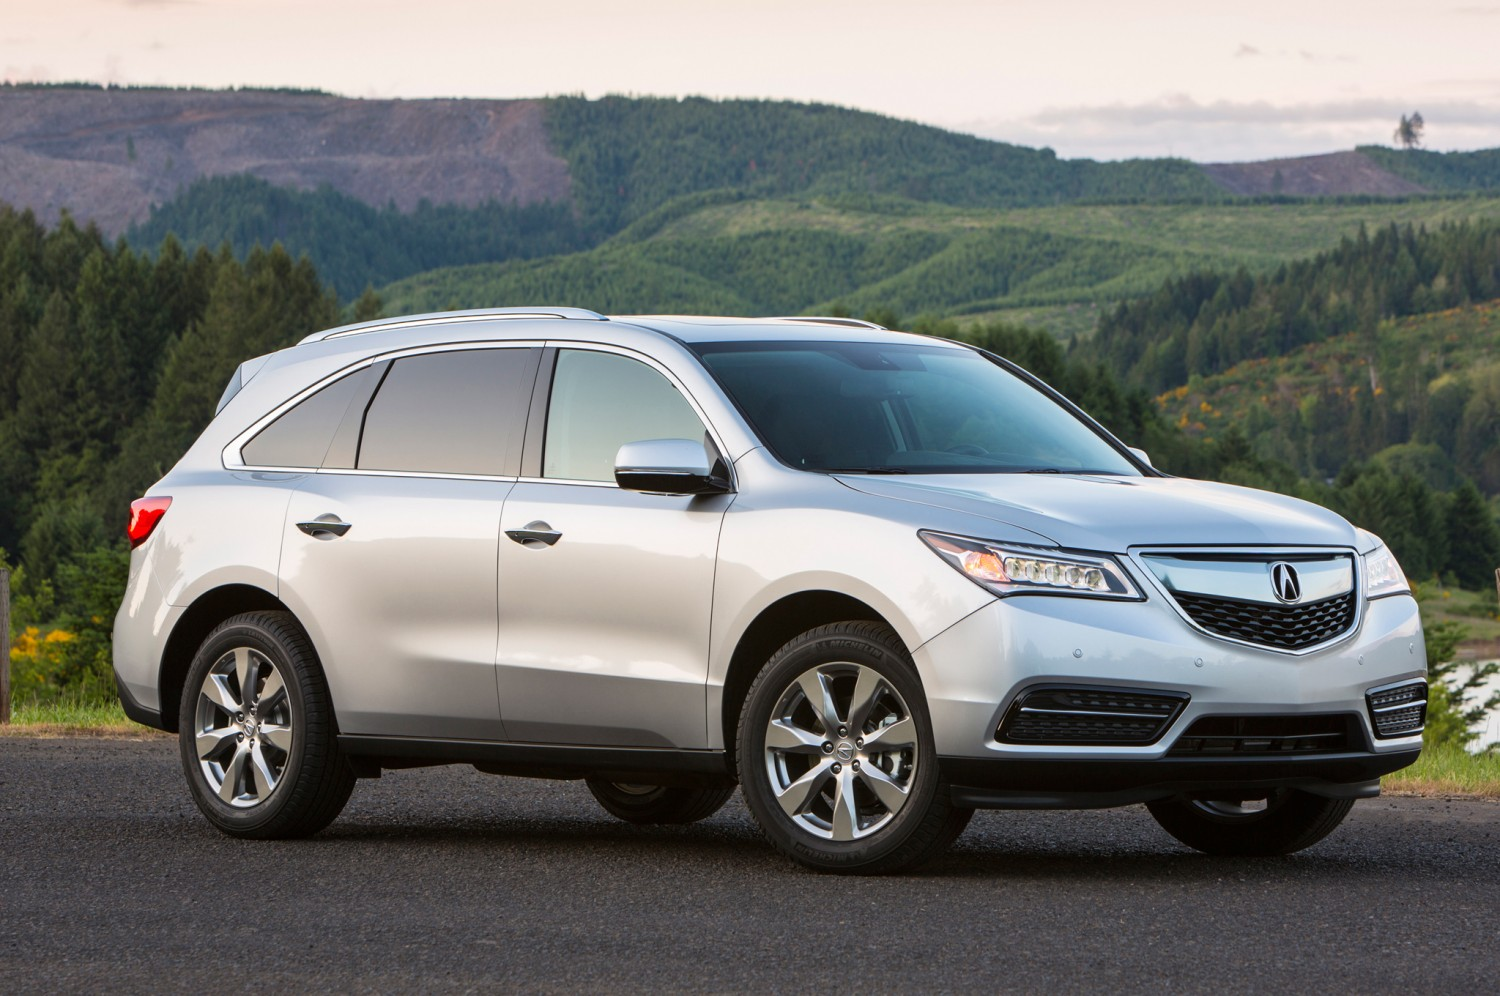 2014 Acura MDX Front Right Side Photo Motor Trend WOT Desktop Backgrounds Wallpaper